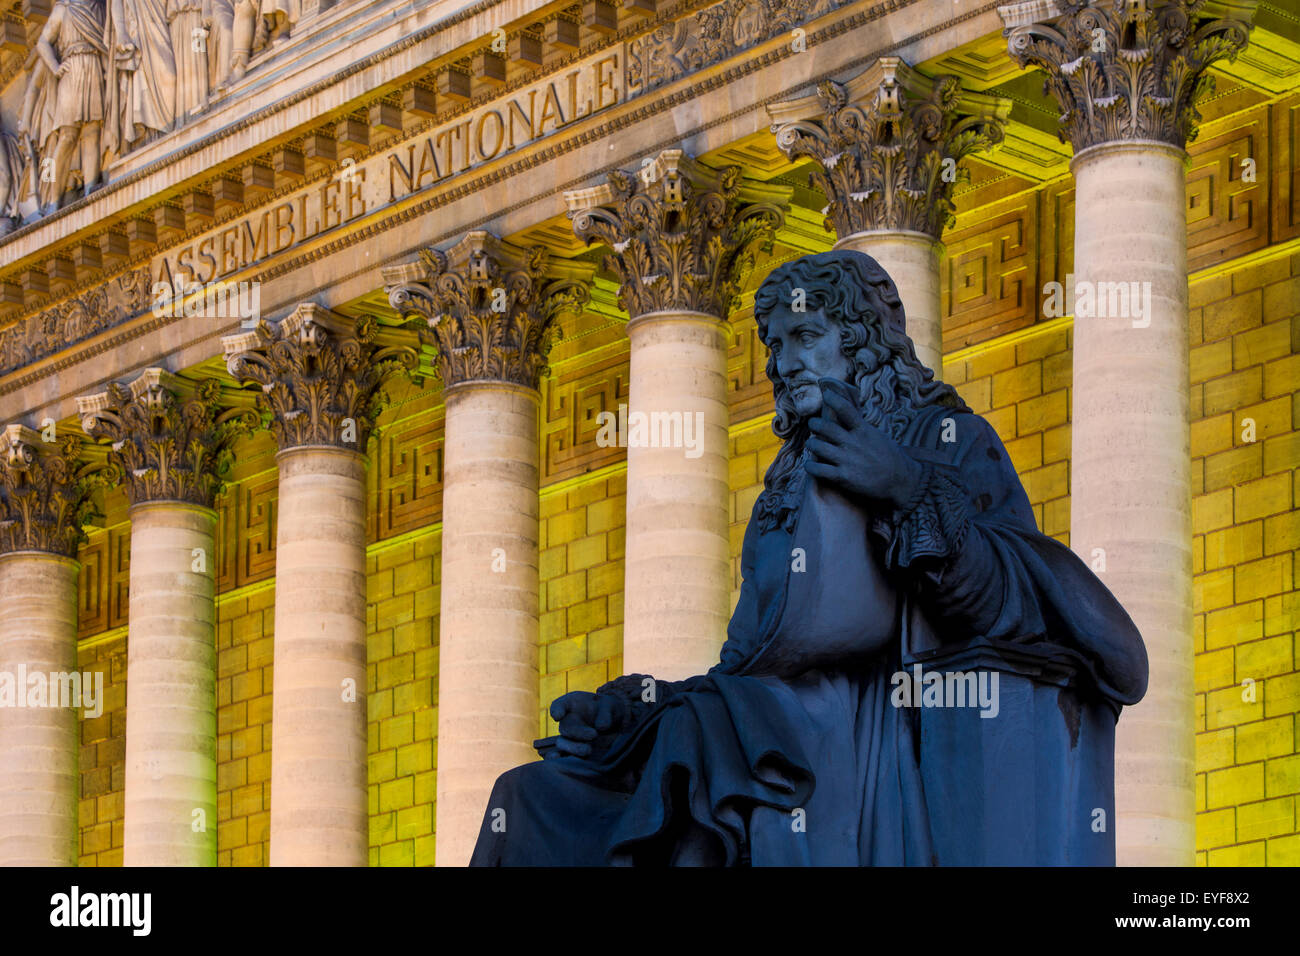 Evening below Jean-Baptiste Colbert statue and the Assemblee Nationale, Paris, France - Stock Image